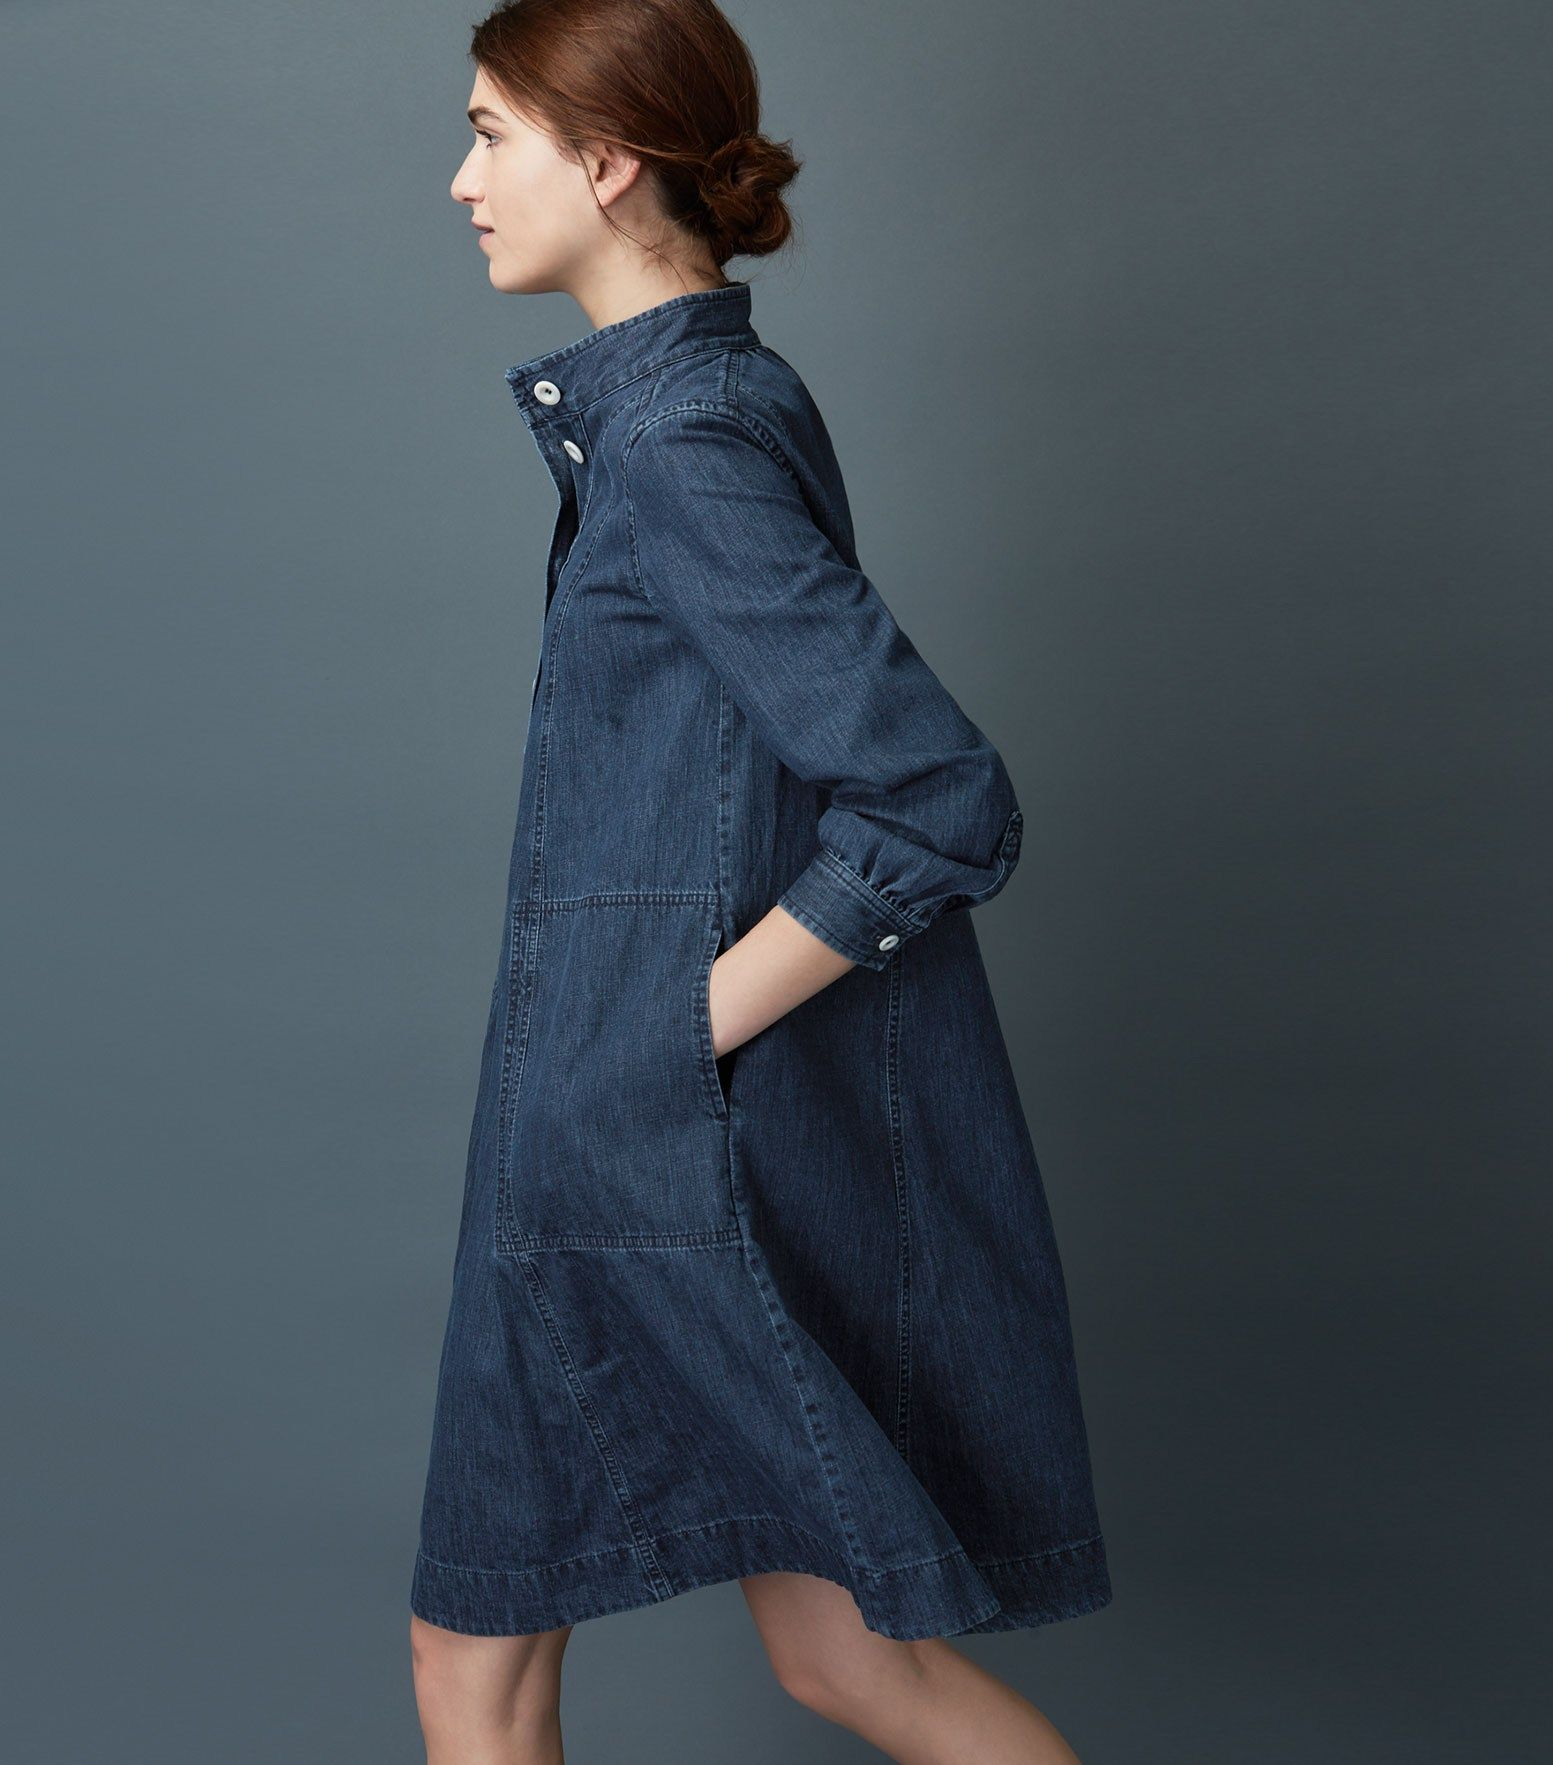 Swingy dress in a soft washed indigodyed denim stand collar